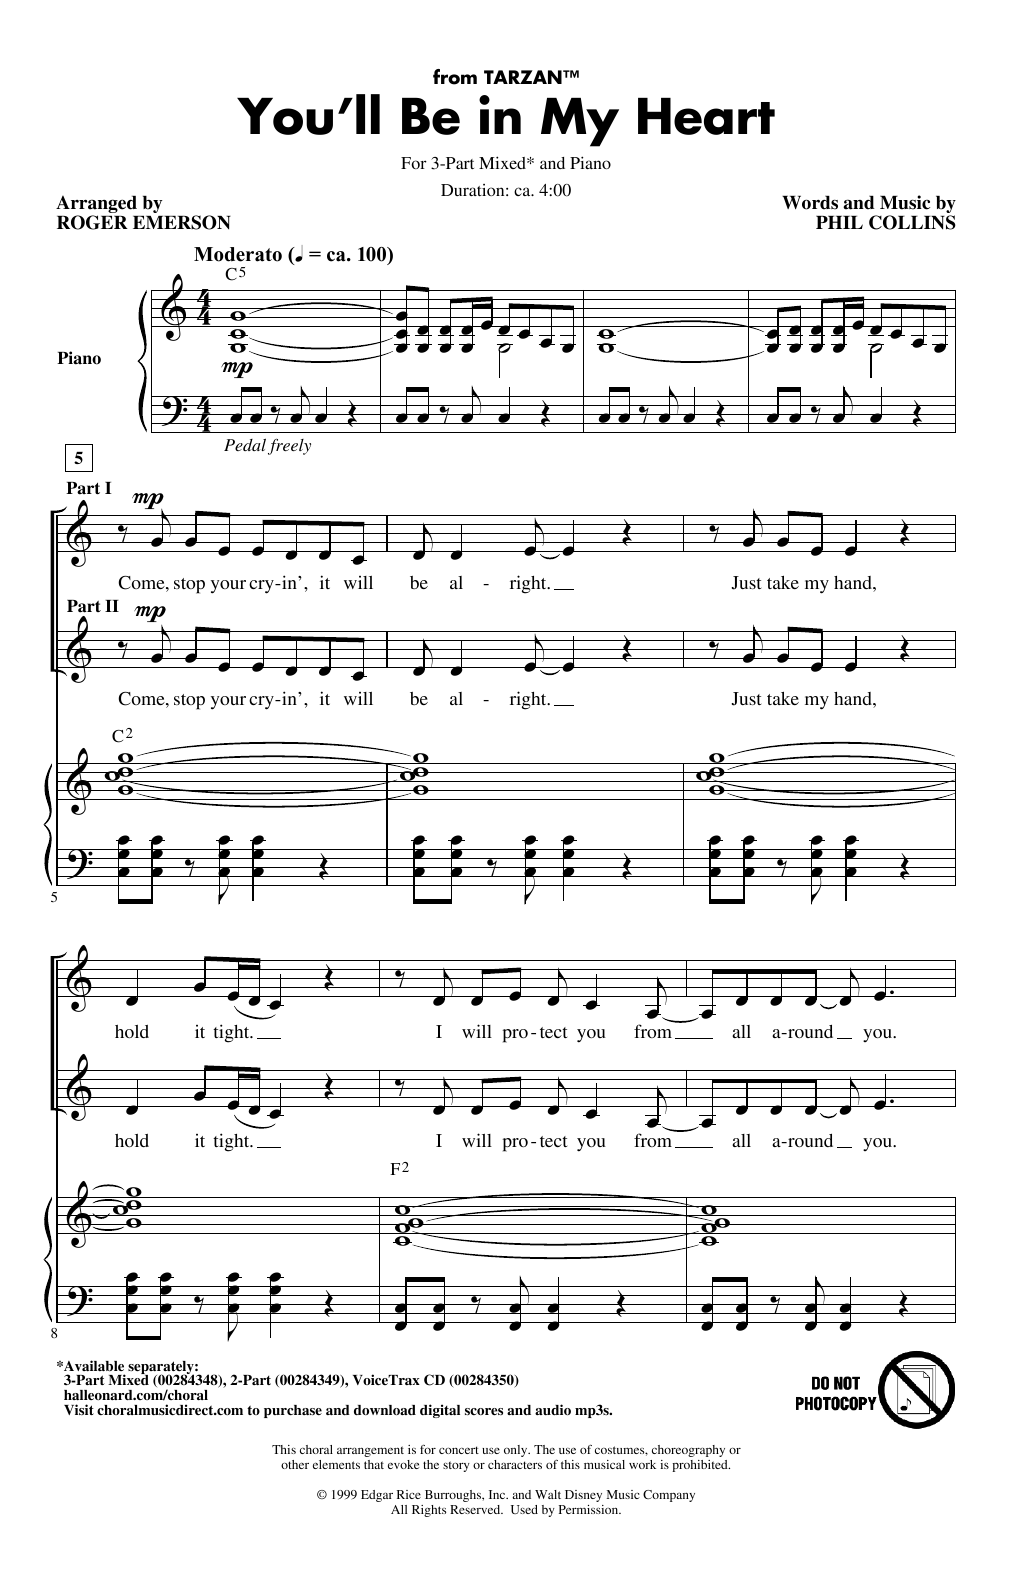 You'll Be In My Heart (from Tarzan) (arr. Roger Emerson) (3-Part Mixed Choir)